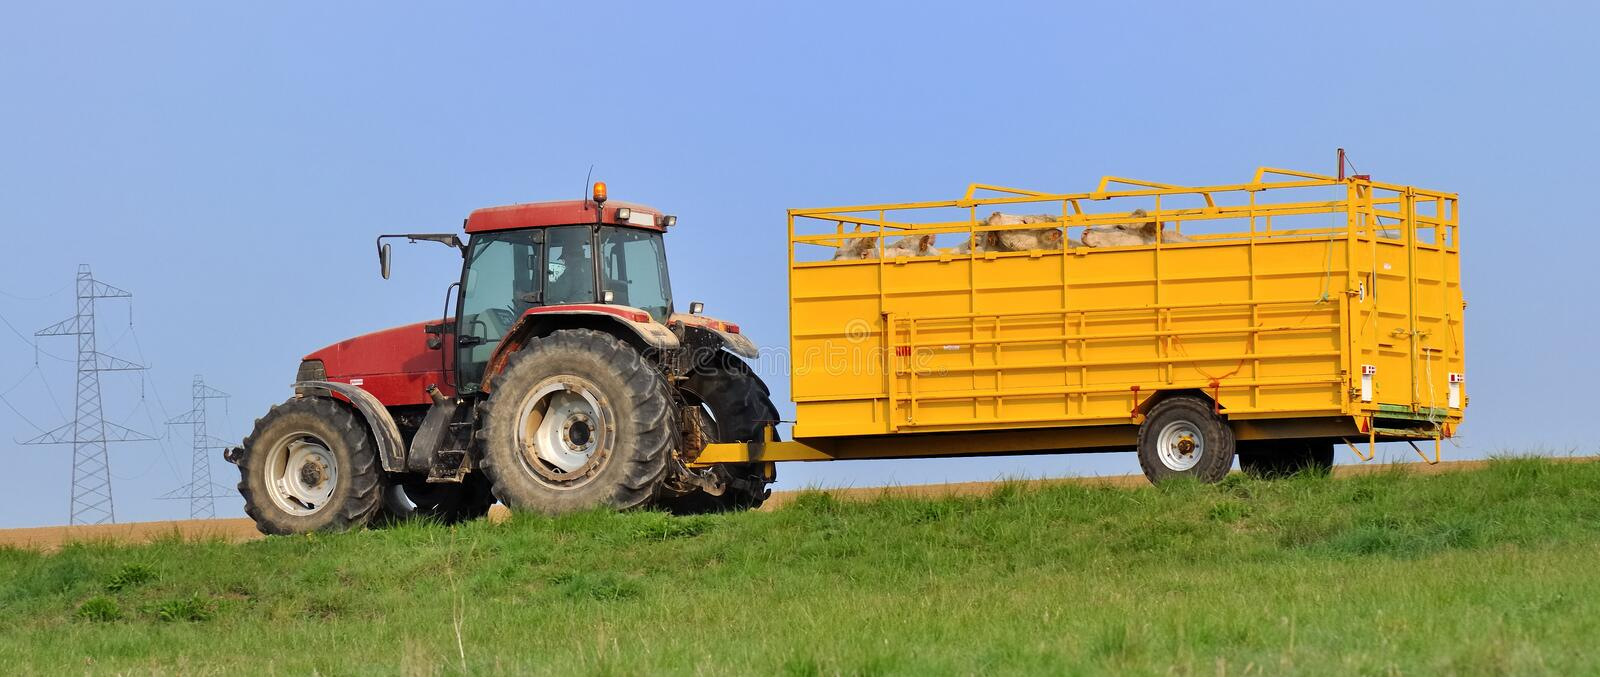 Livestock transport. Cattle truck carrying cows on a country road stock photography